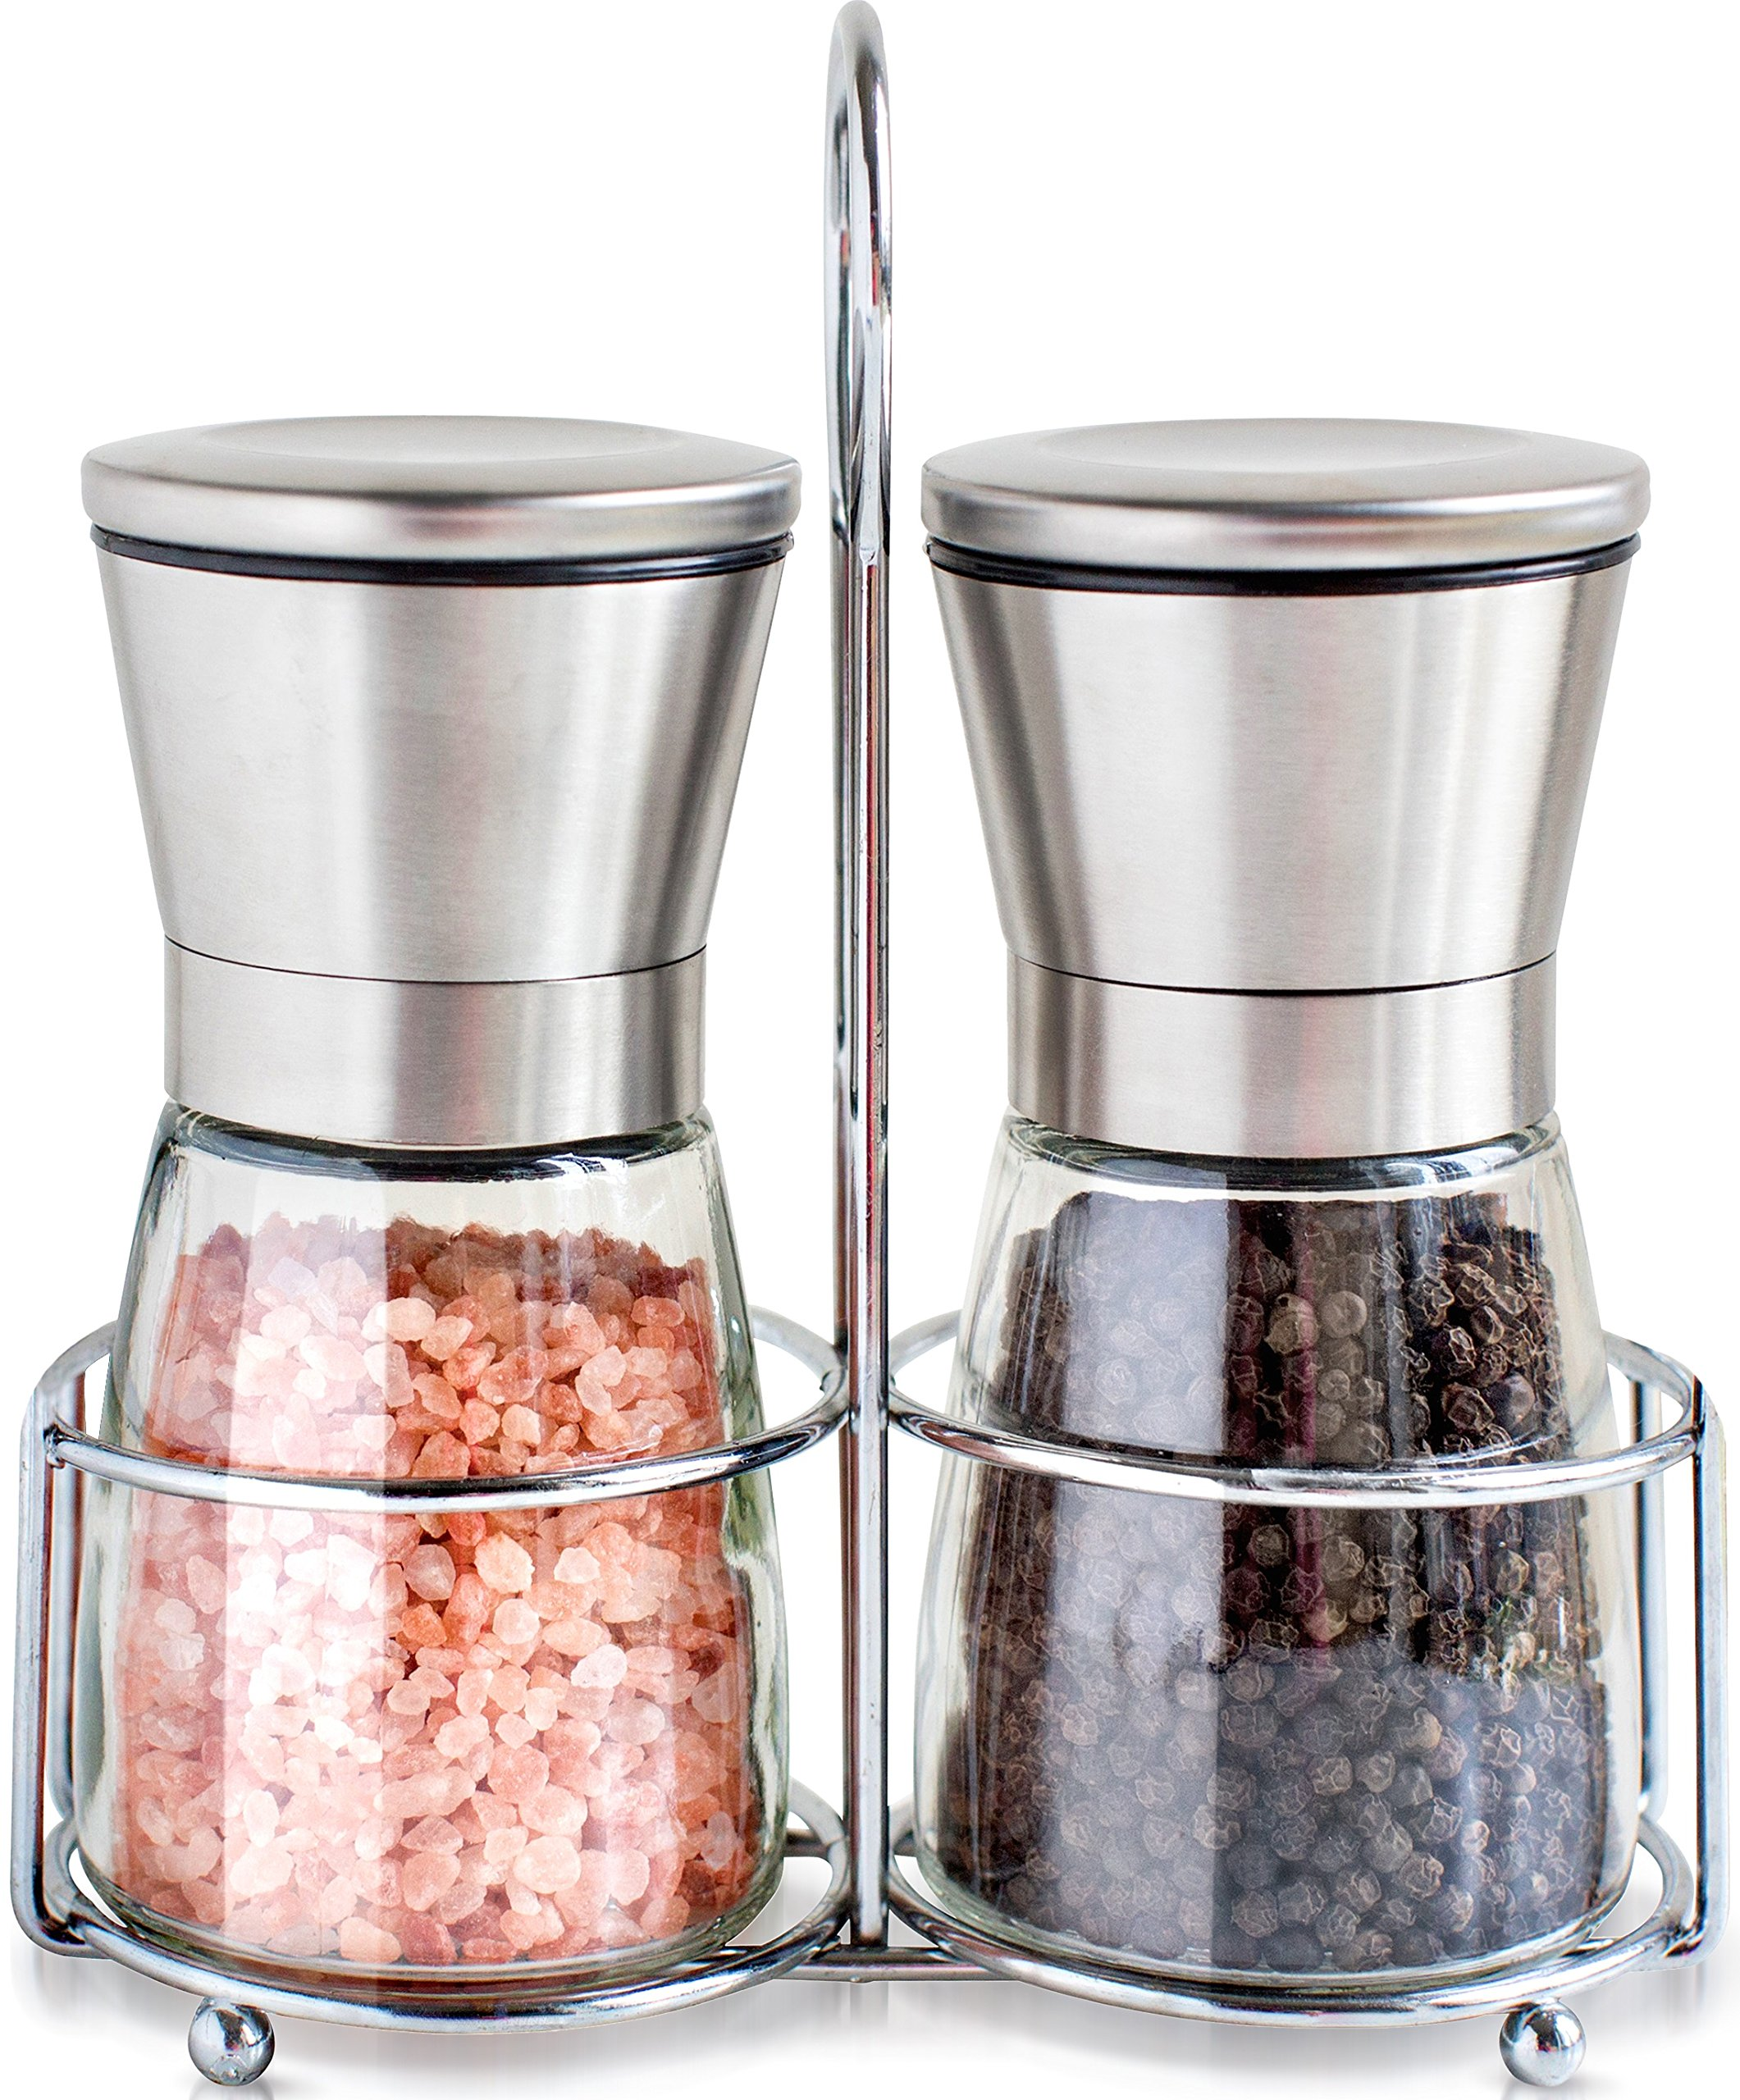 Premium Stainless Steel Salt and Pepper Grinder Set With Stand - Salt and Pepper Shakers with Adjustable Coarseness - Salt Grinders and Pepper Mill Shaker Mills Set by Willow & Everett